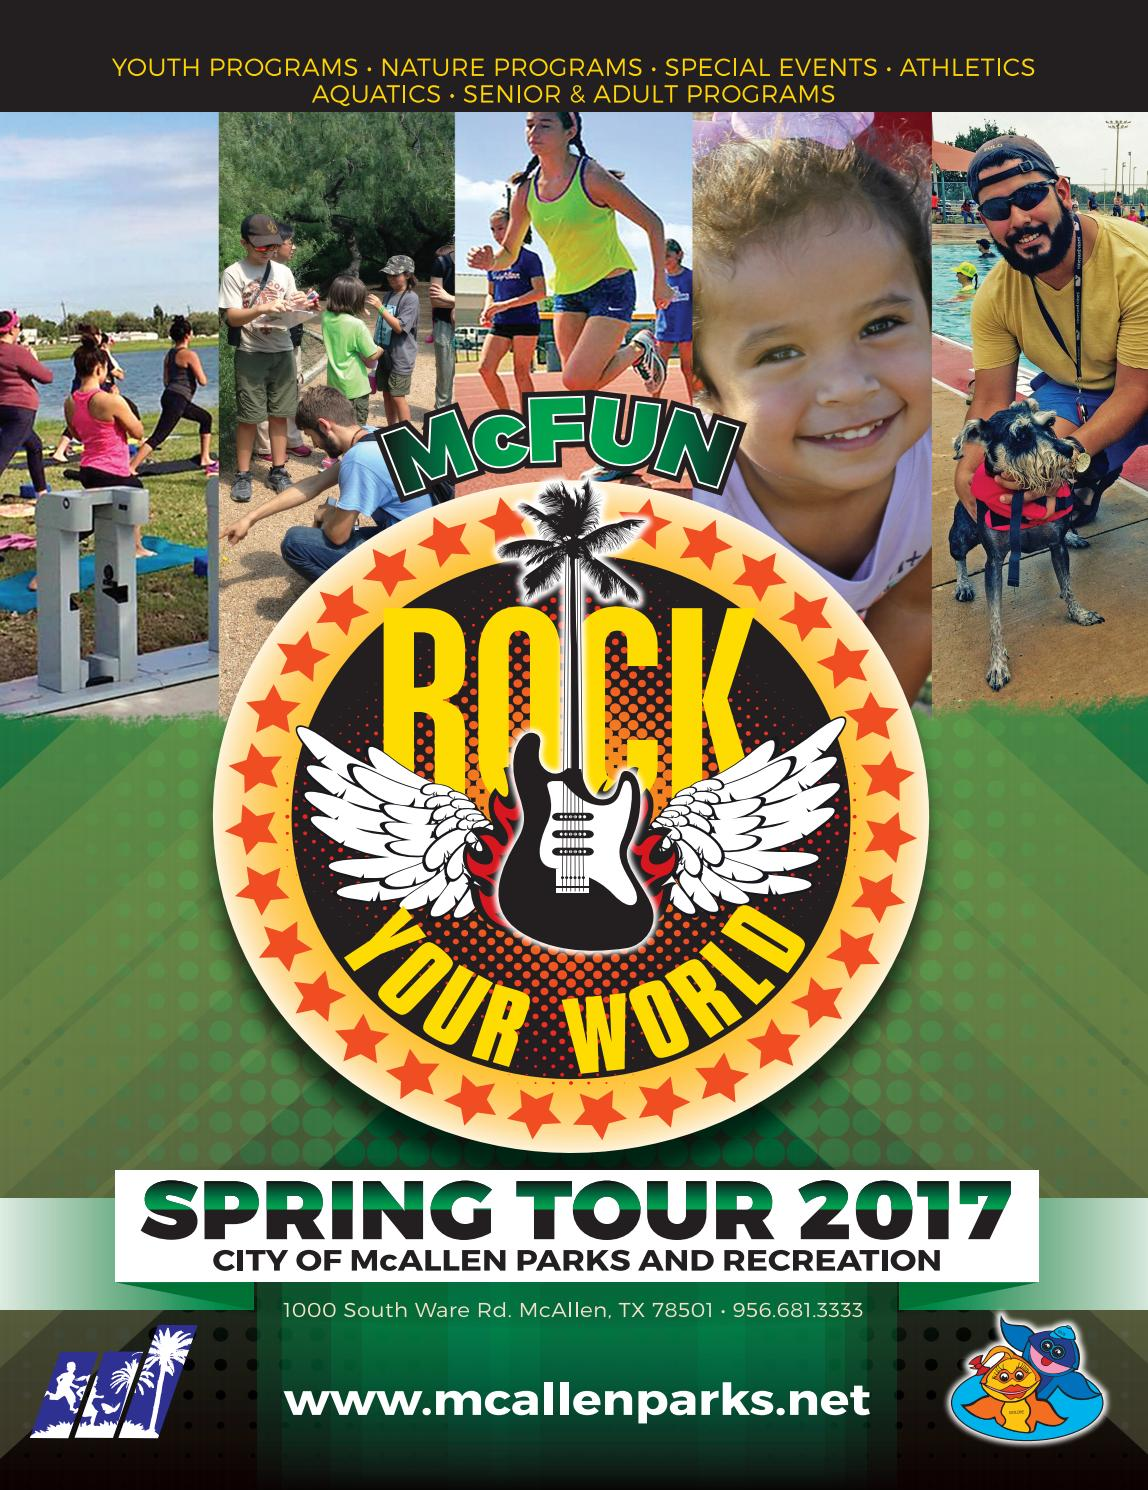 Mcfun spring 2017 by mcallen parks and recreation issuu 1betcityfo Gallery